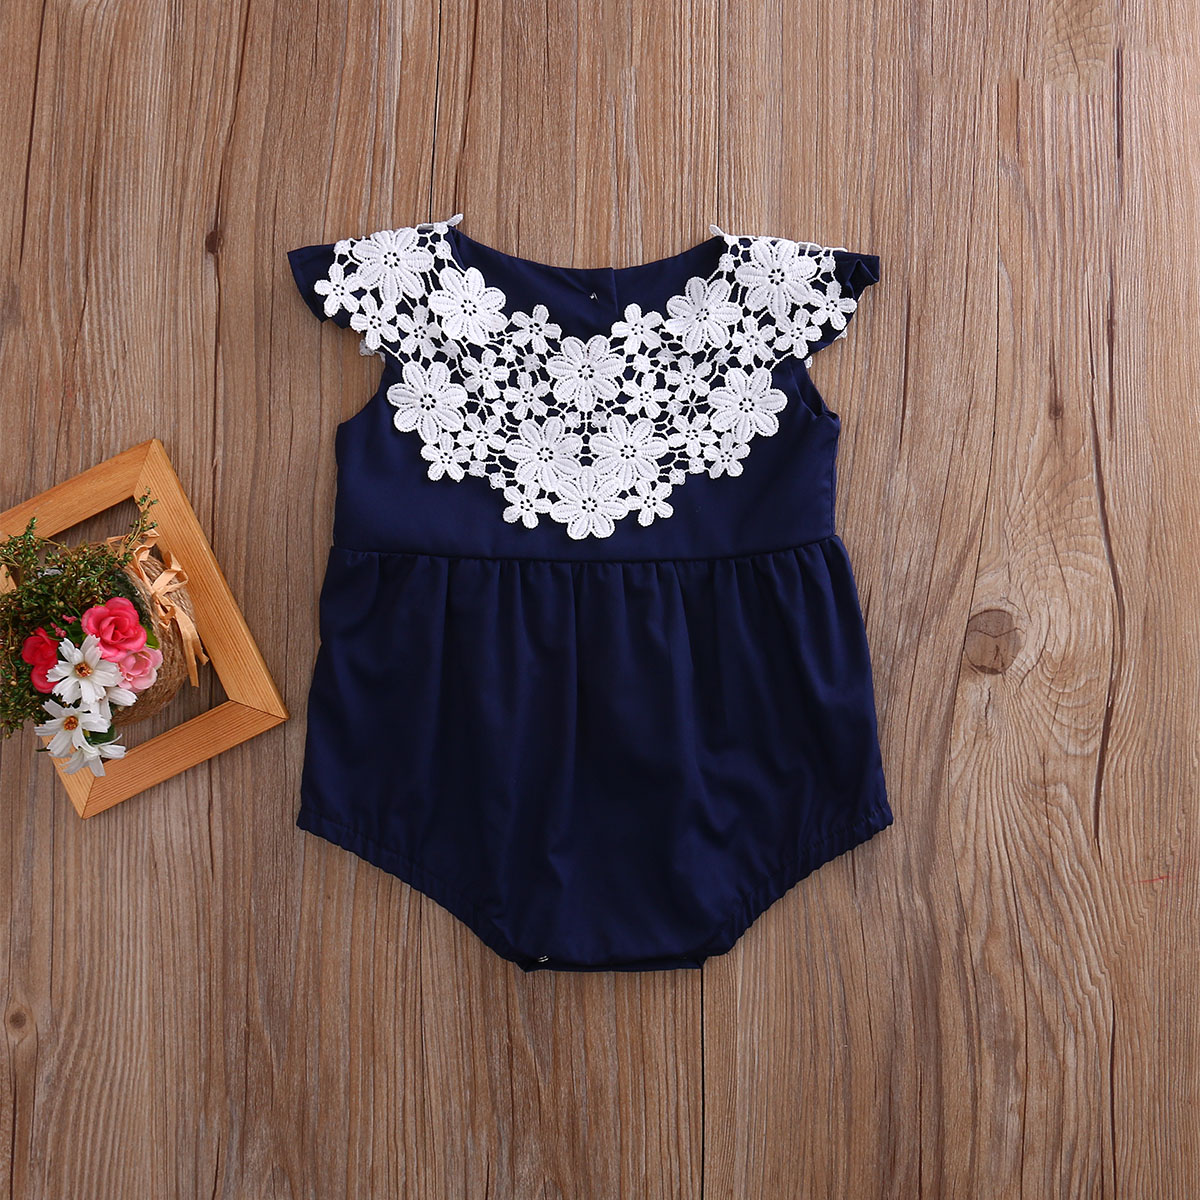 353b2e651 Newborn Baby Girl Lace Stitching Clothes Cotton Romper Navy Blue ...